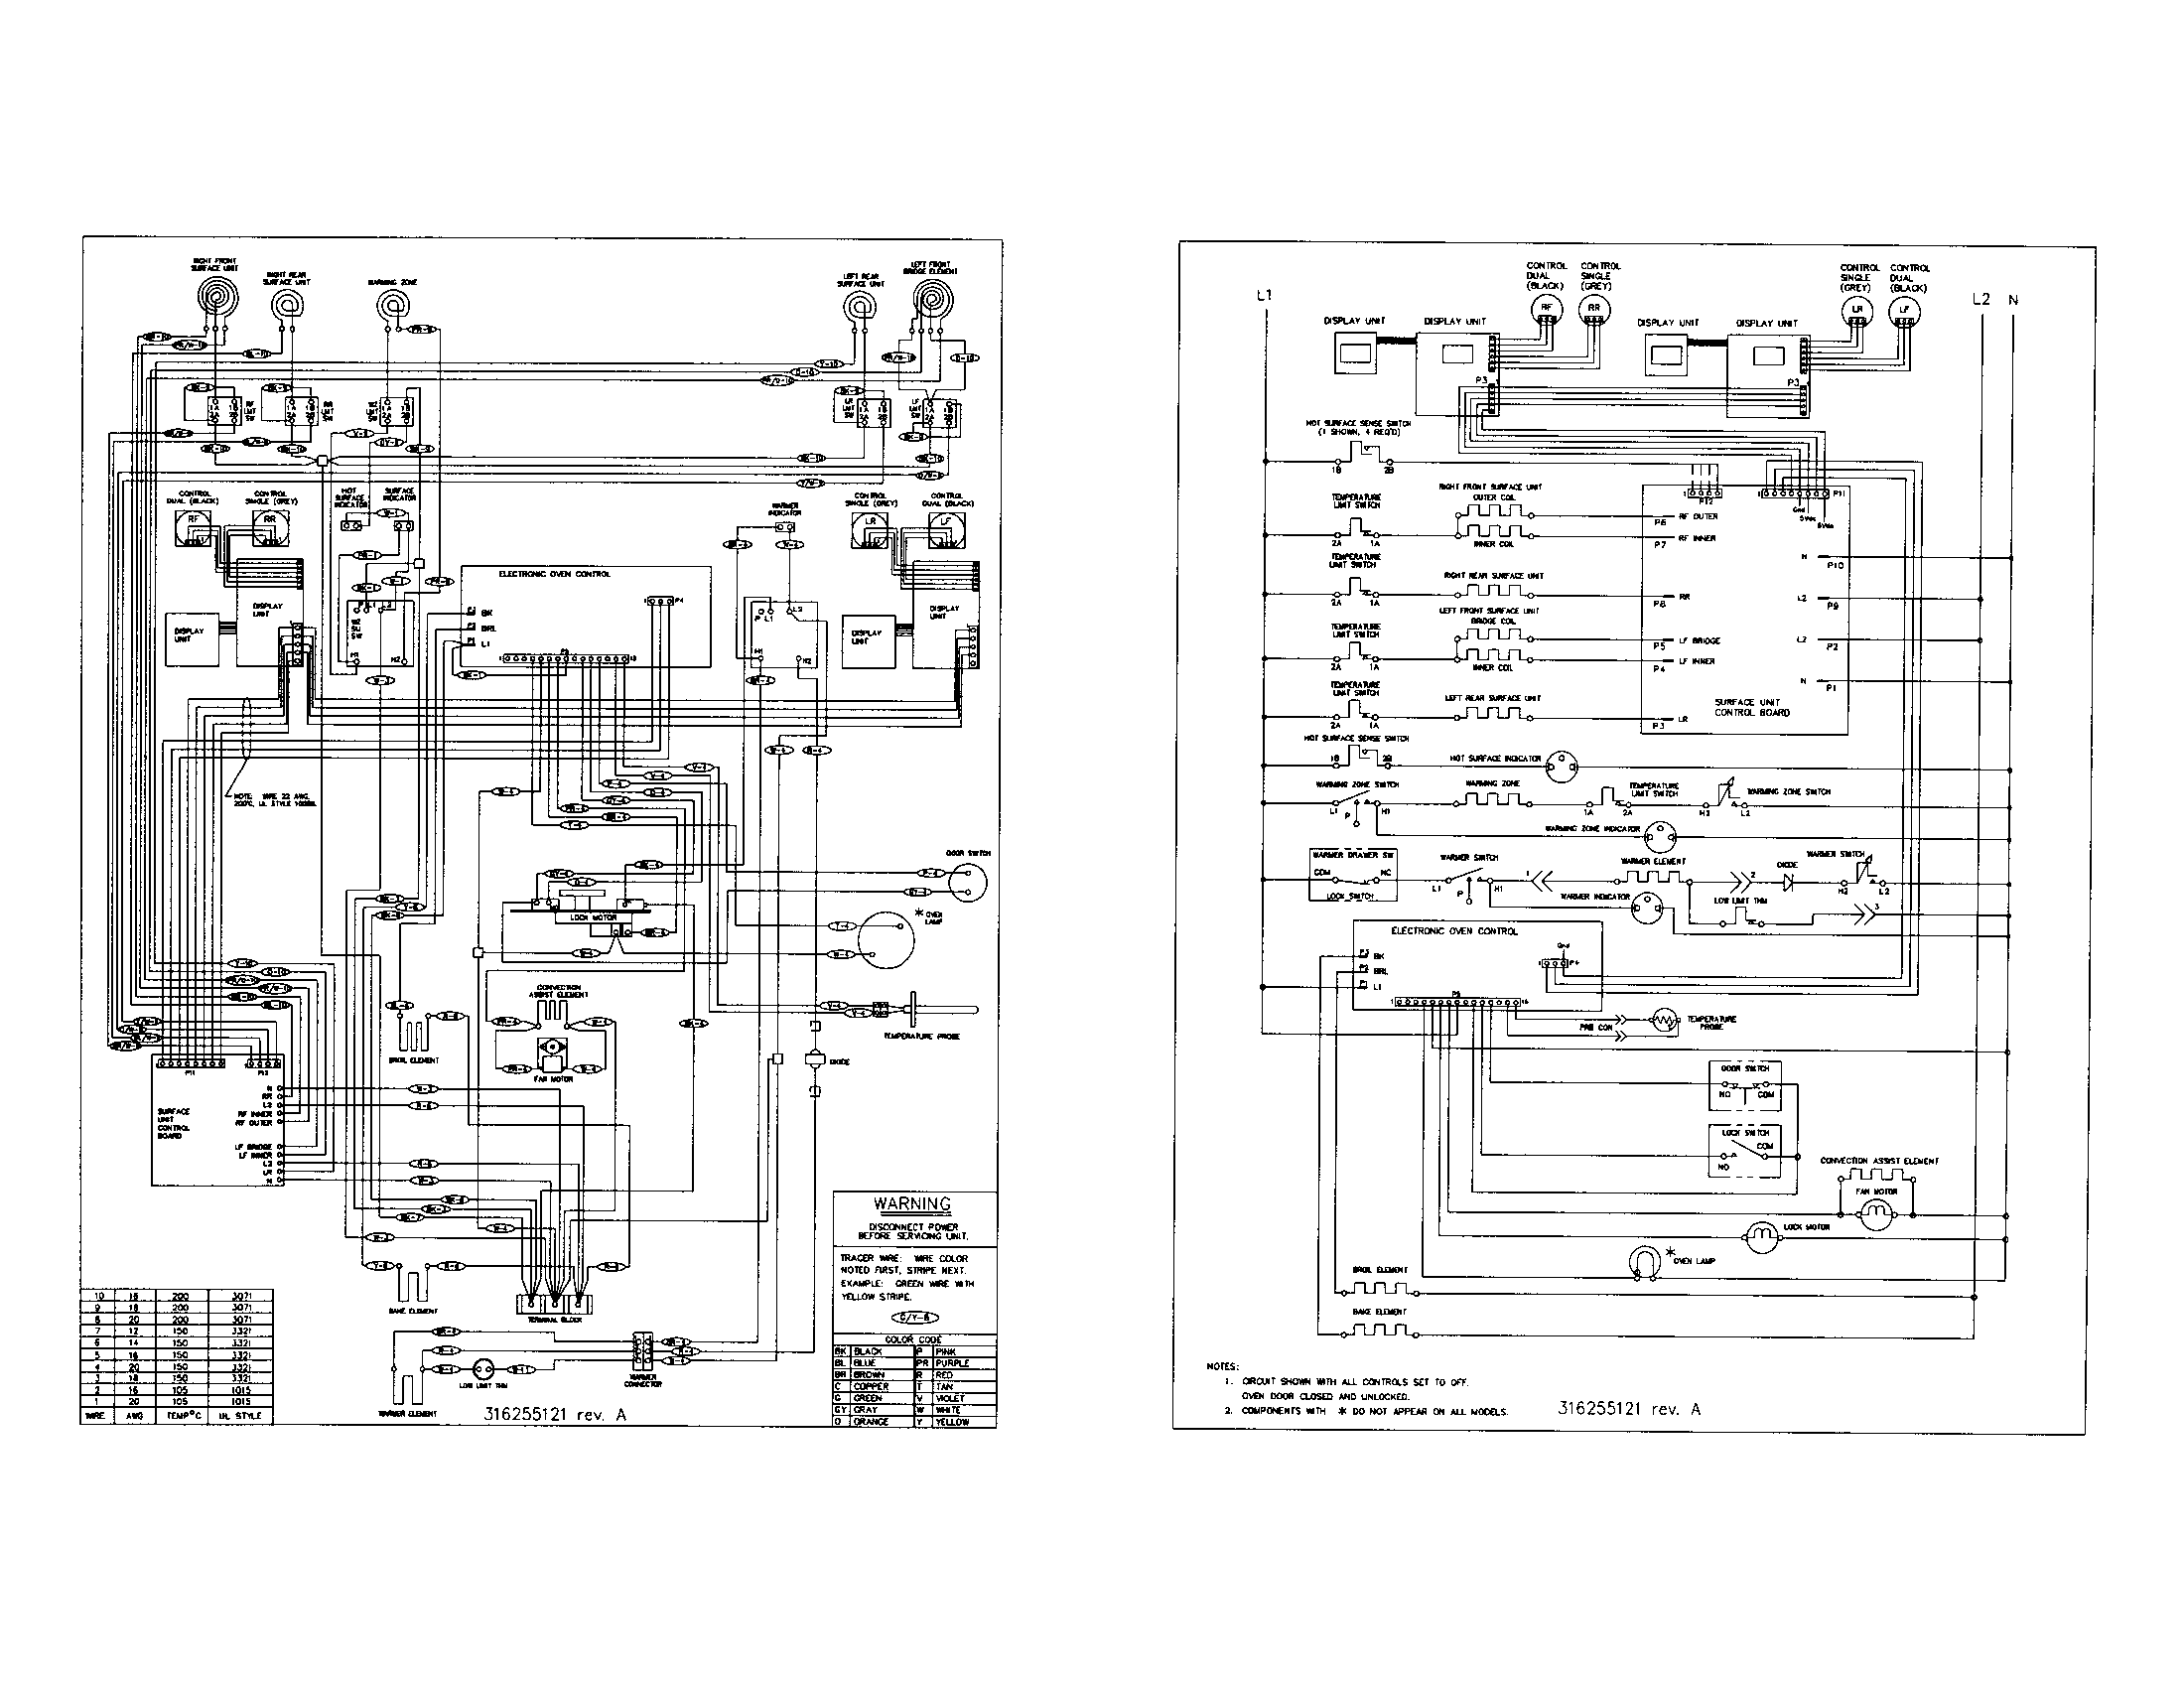 Where Is The Wiring Diagram Locaated On A 795.71063.010